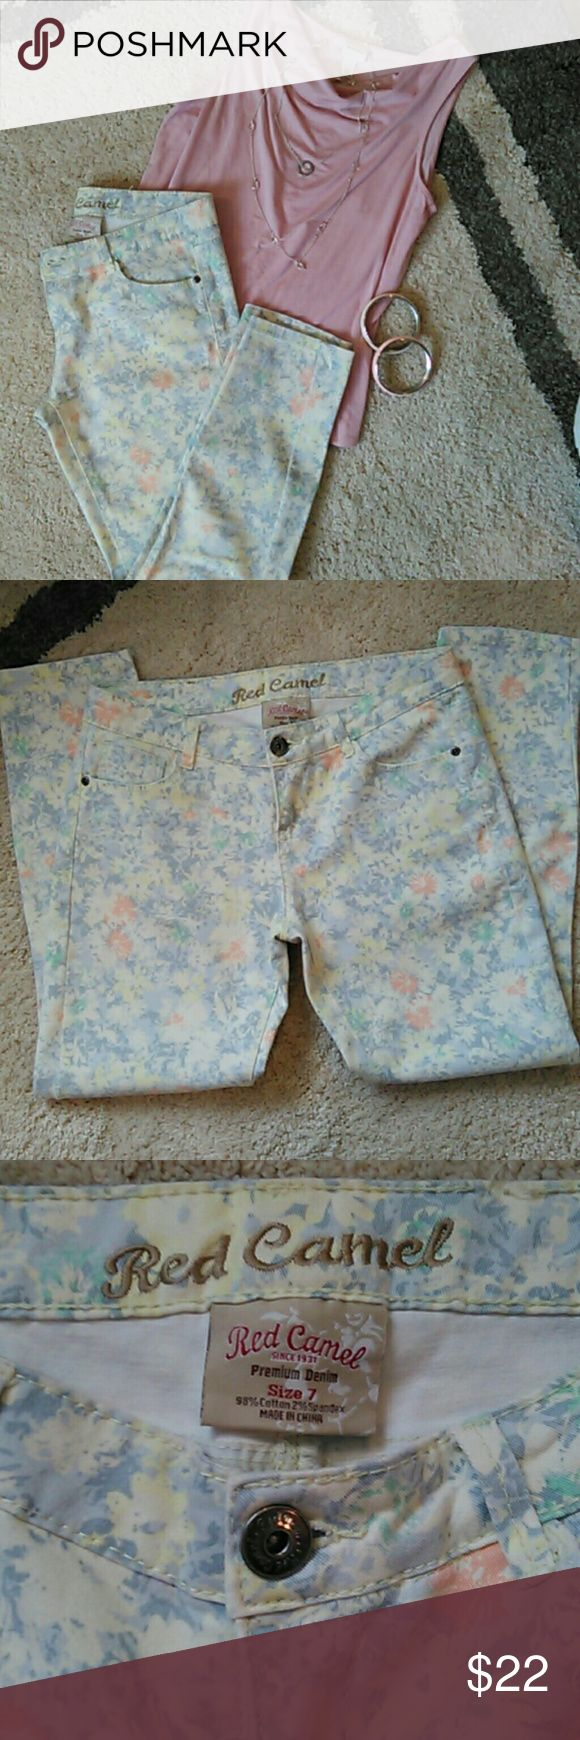 Red Camel jeans Floral jeans/ beautiful print. Wear any color shirt. These are a size 7 but fit like a 6. Purchased at Belk's dept store. Worn 1 time. Red Camel Pants